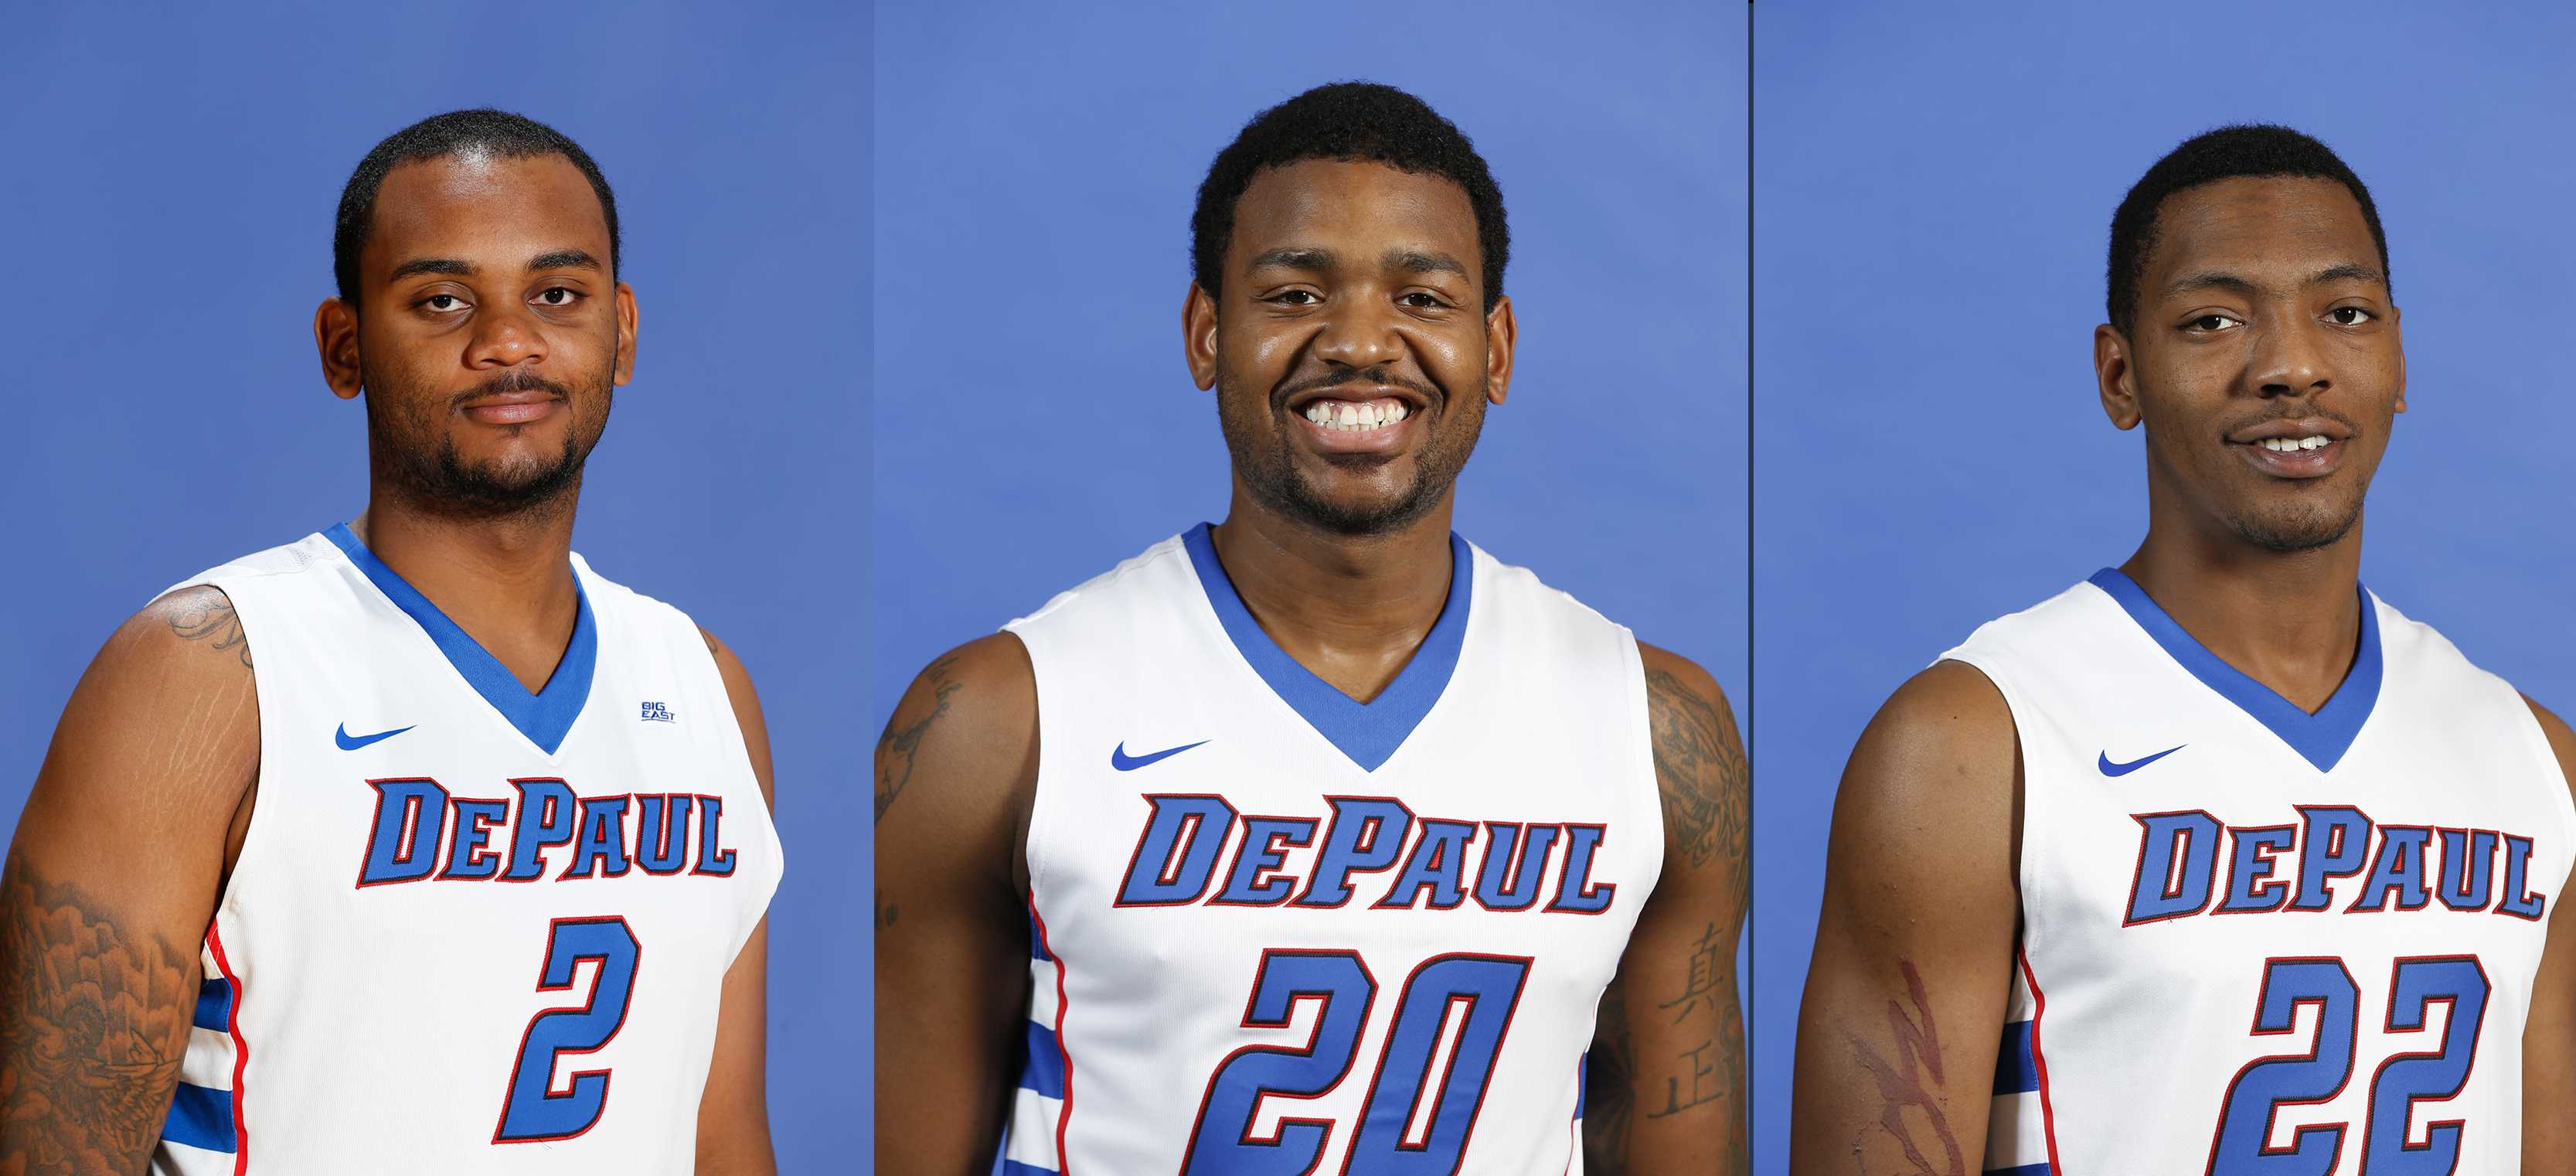 depaul basketball - photo #43